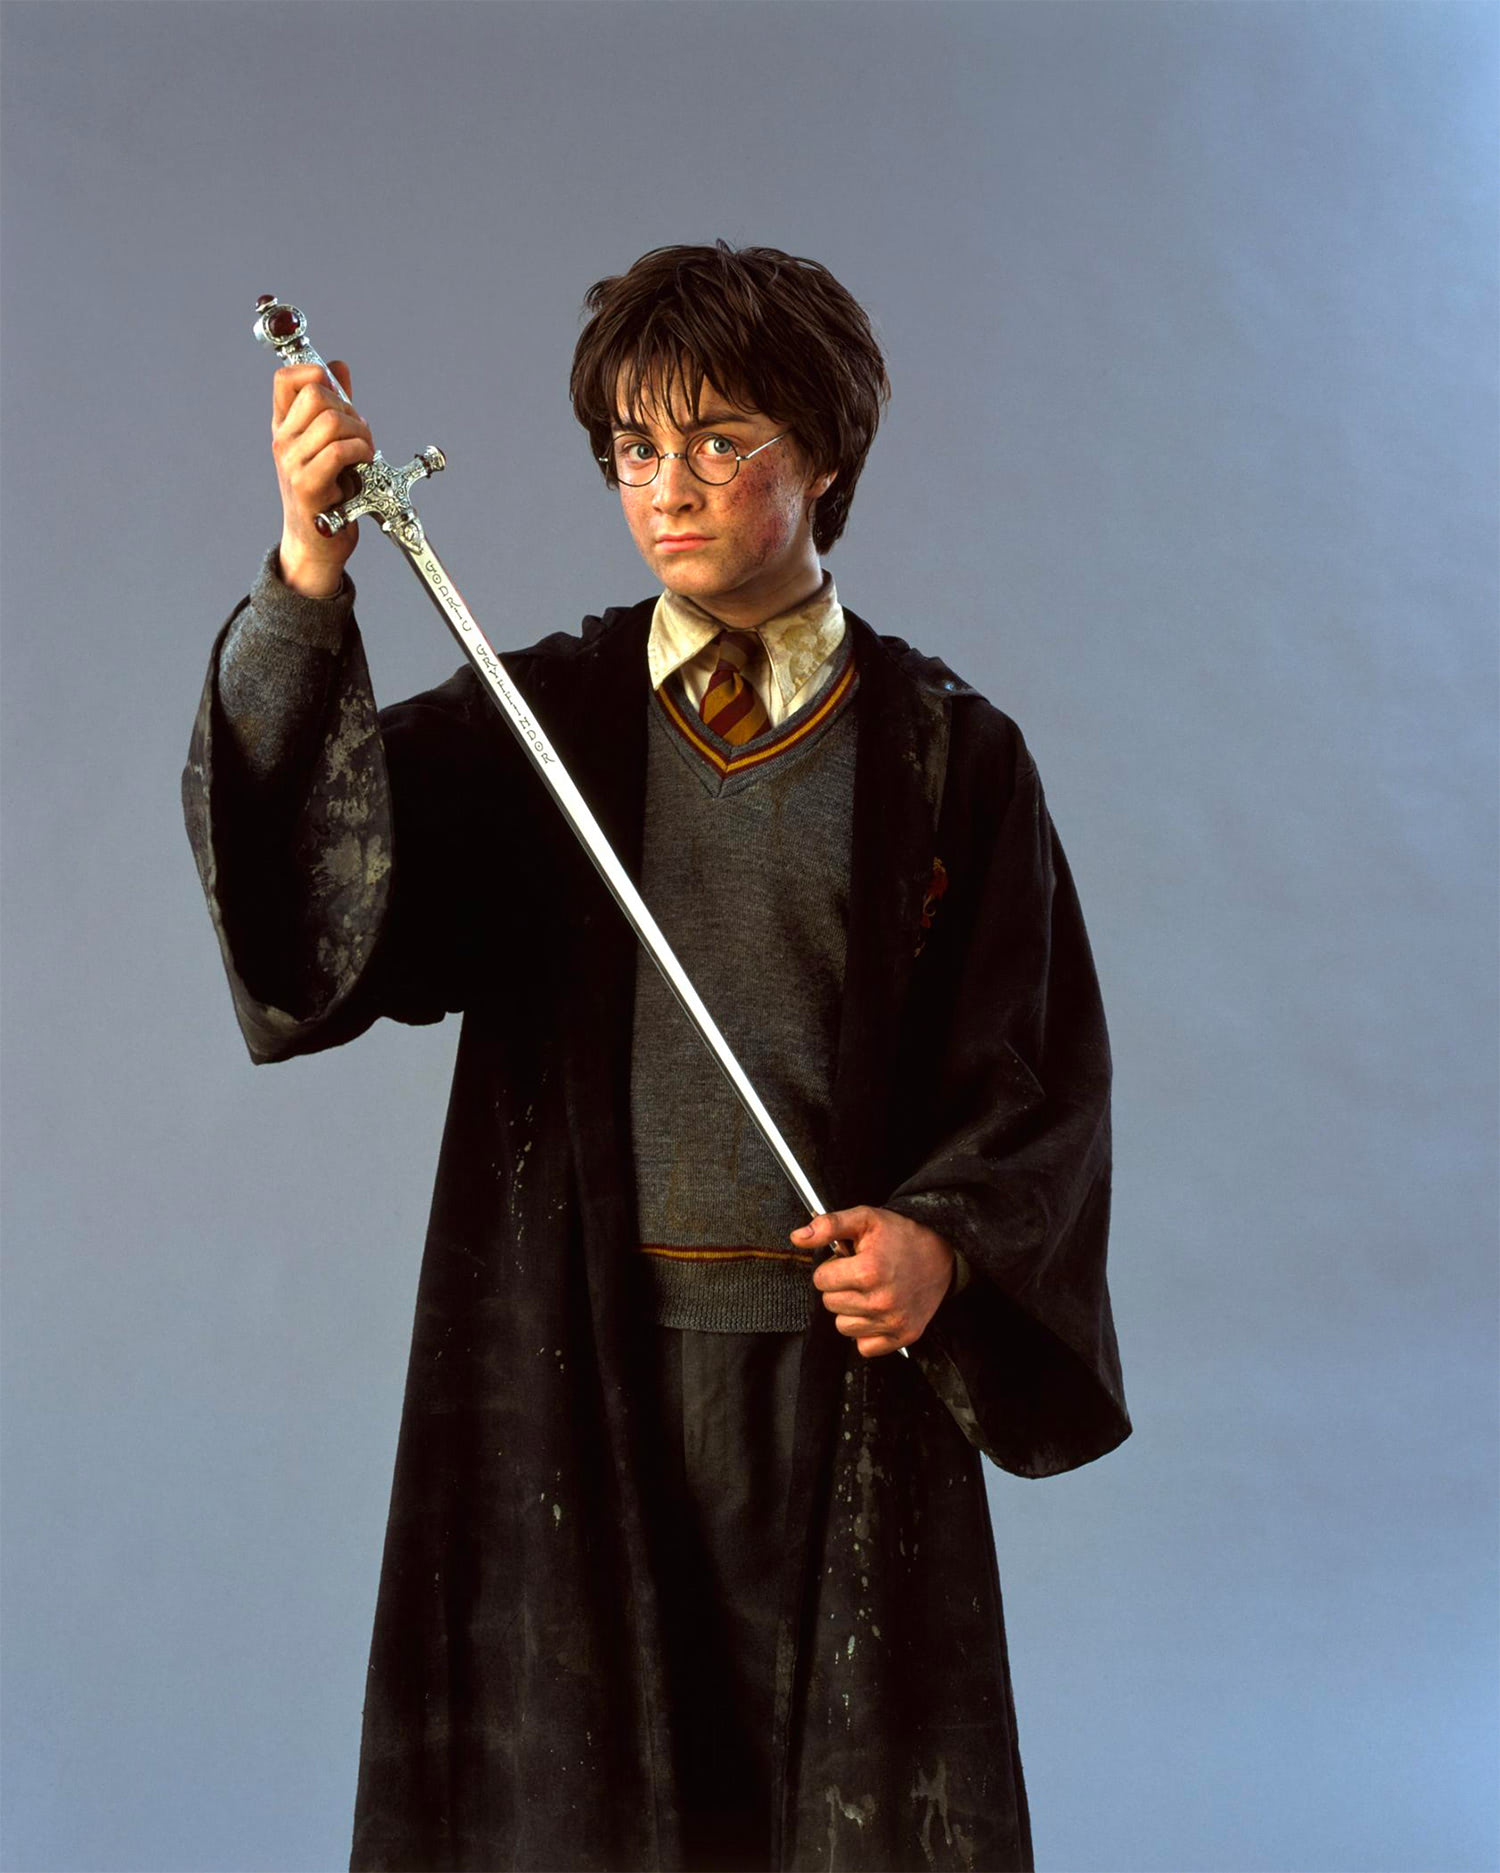 Portrait of Harry Potter with the Sword of Gryffindor